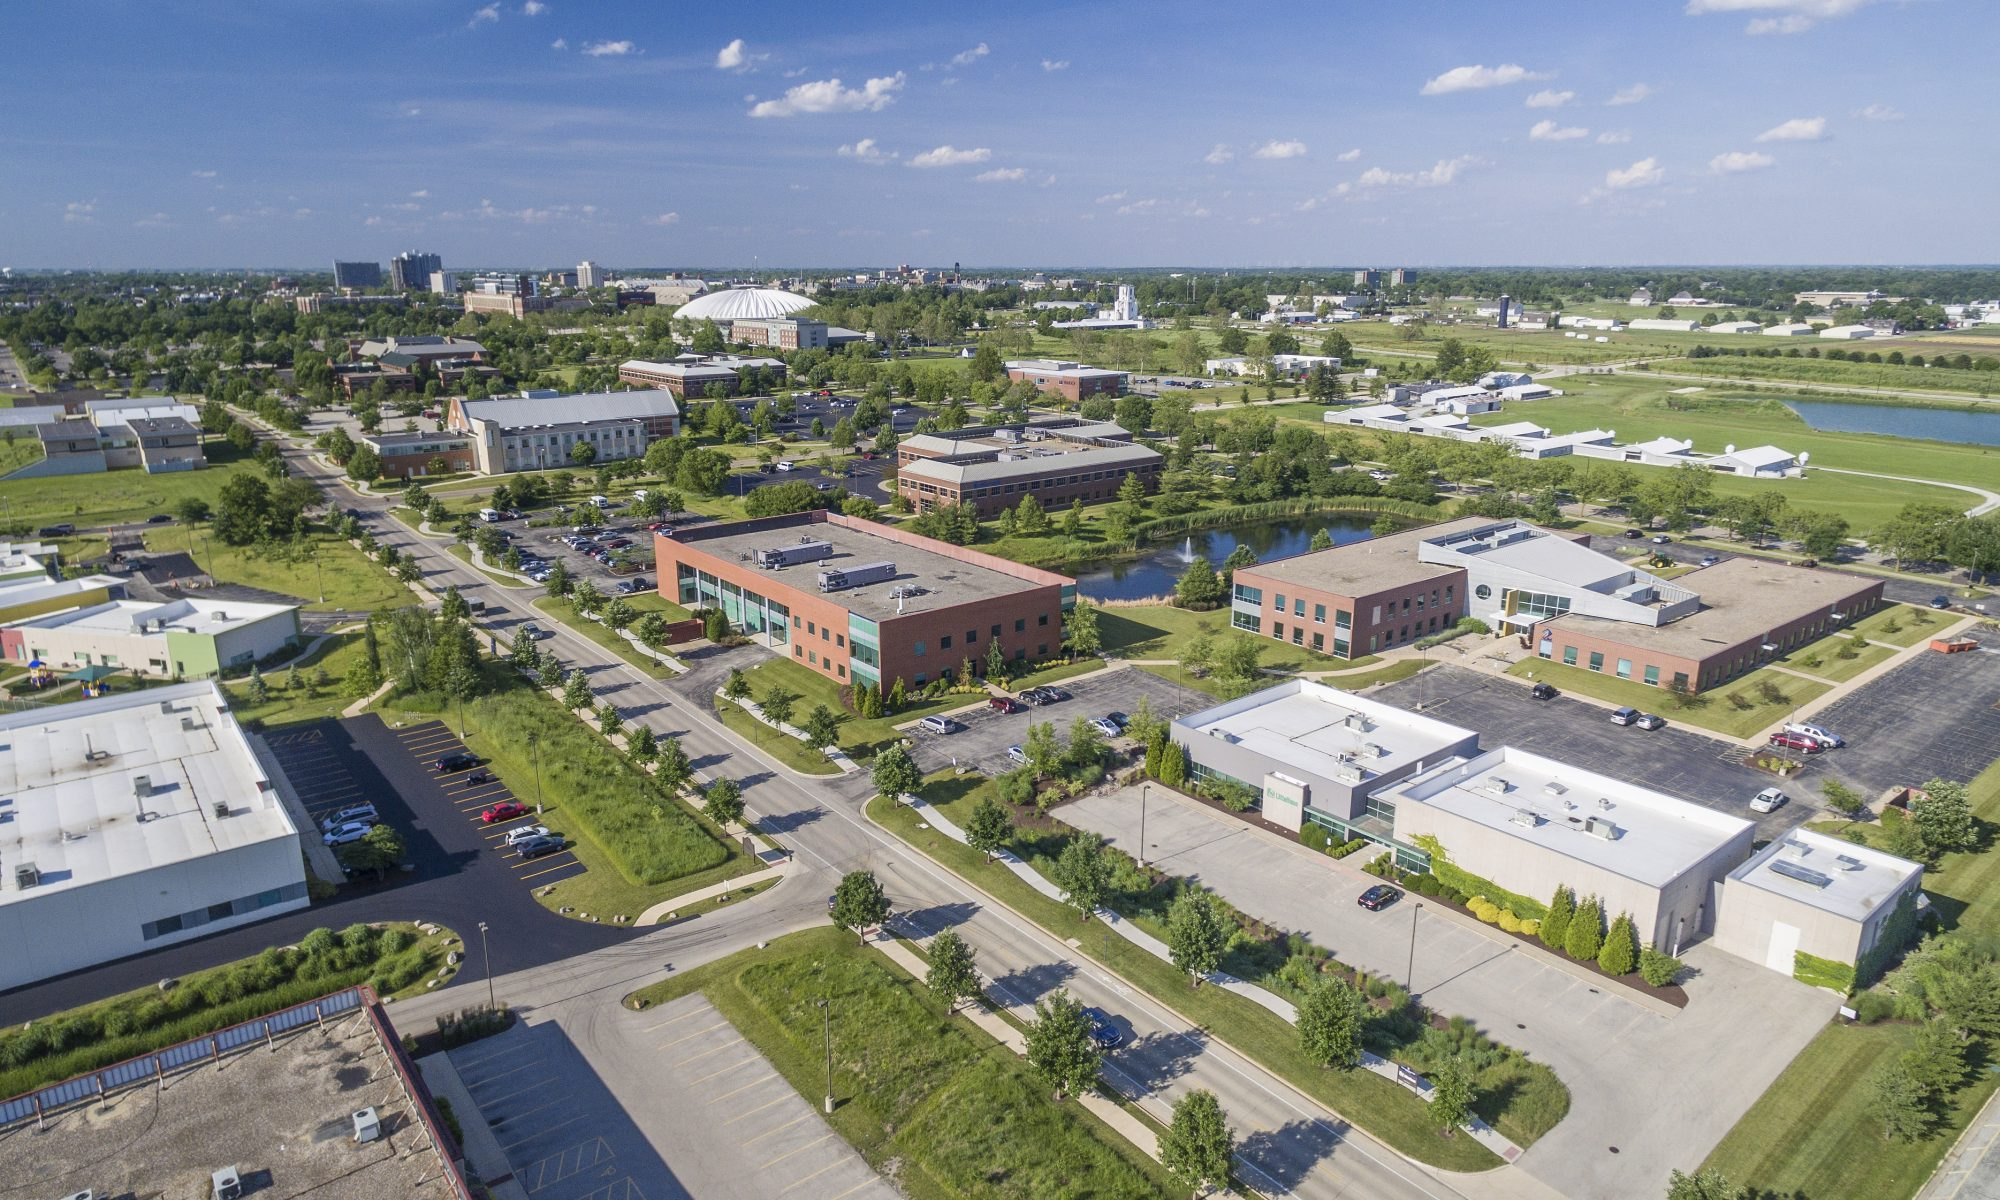 Research Park Arial View